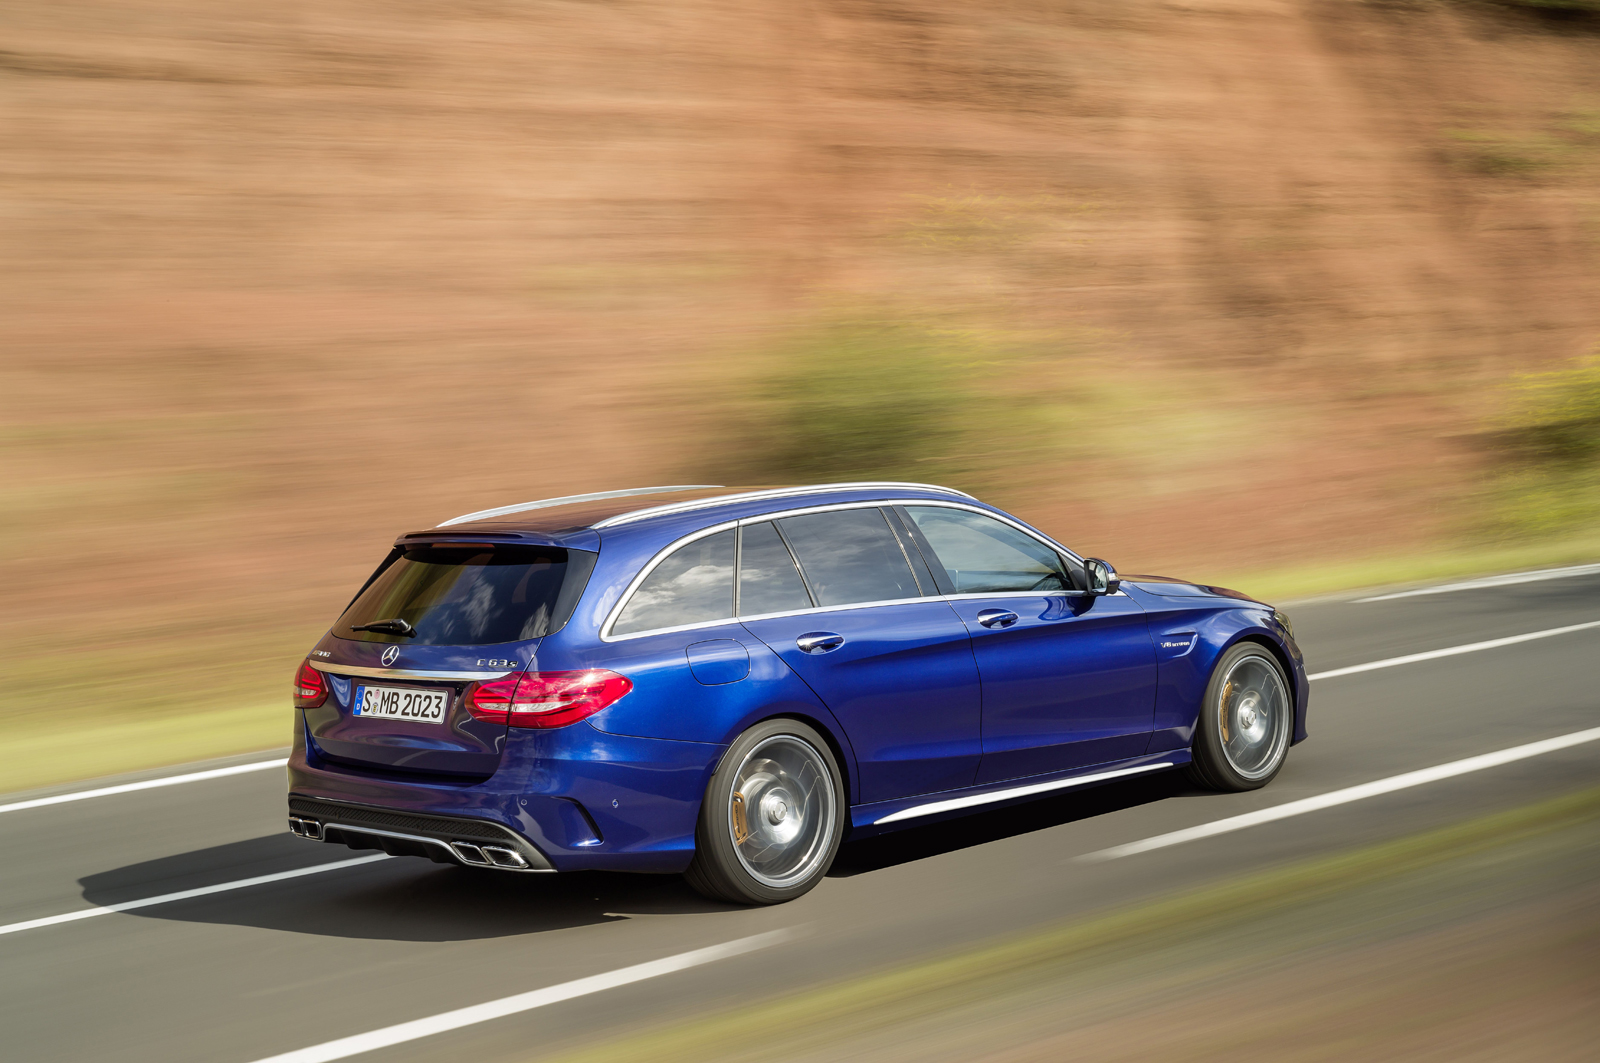 mercedes-amg-c63-estate-paris-2014-mercedesblog-102